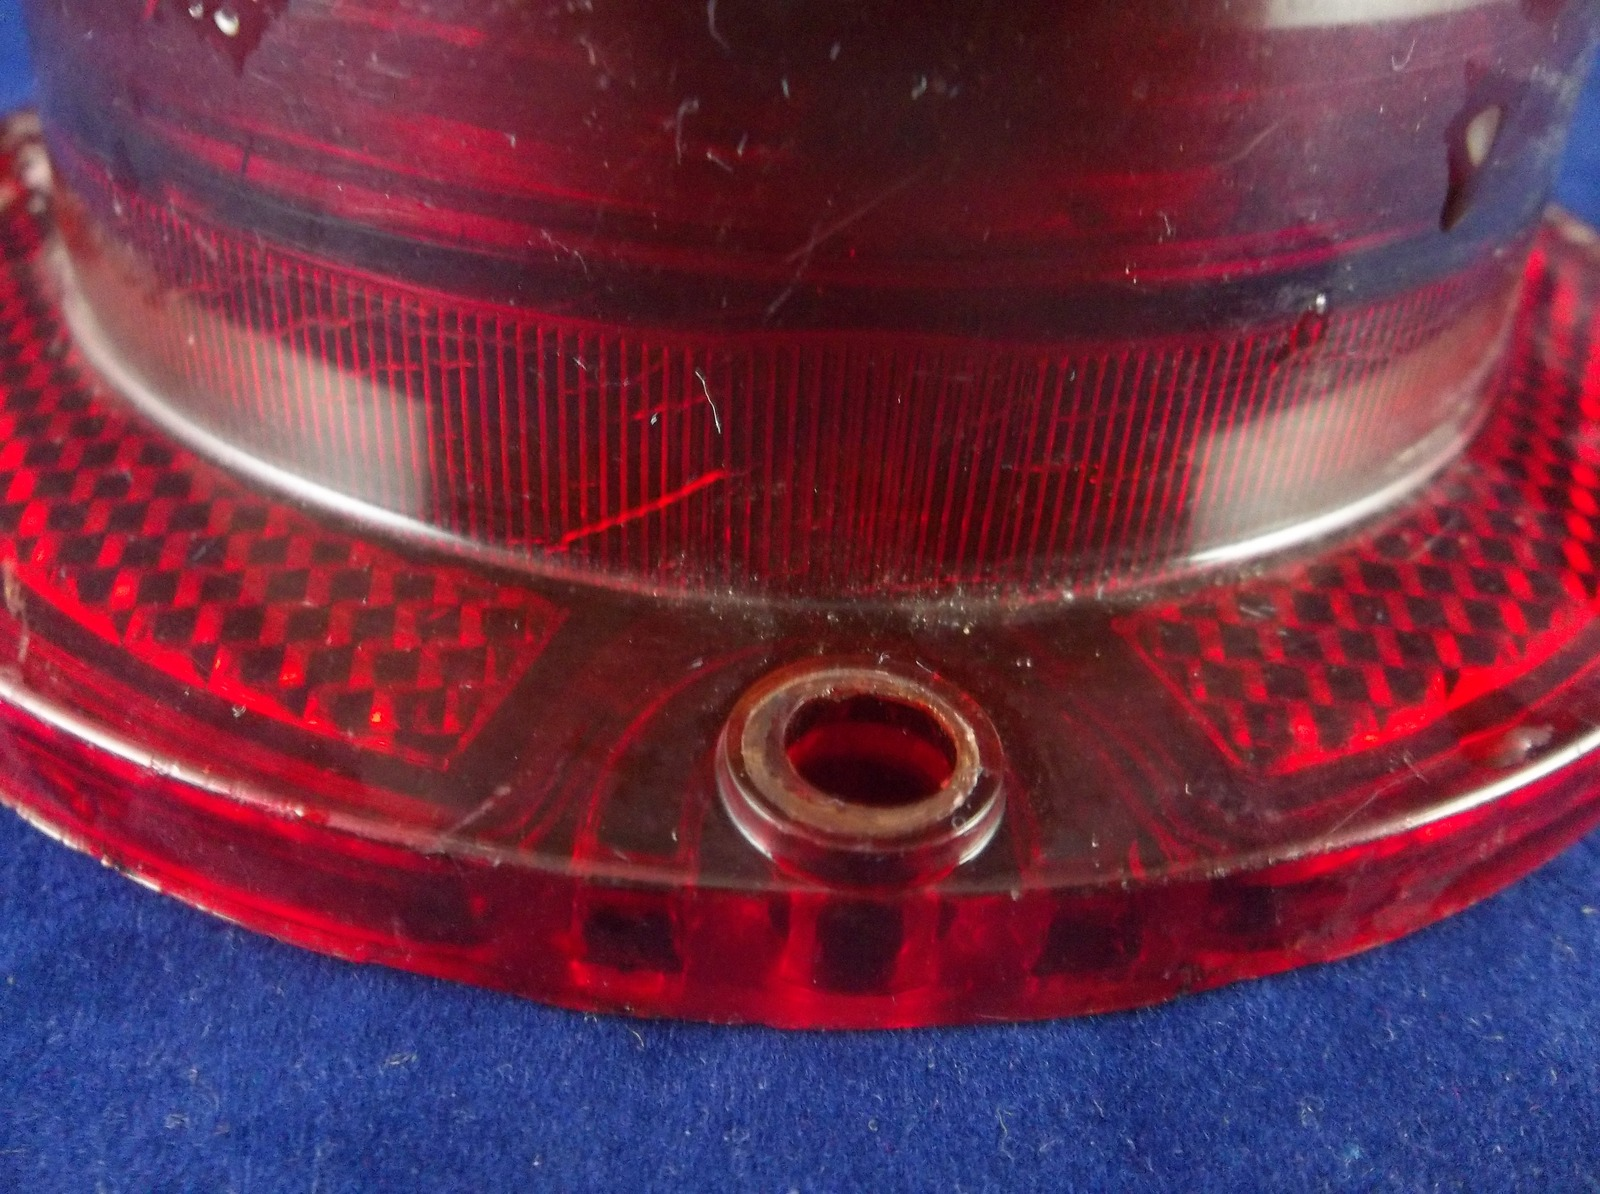 1963 Chevrolet Impala Guidex Tail Light Lens Pair With Trim Rings OEM 5954186